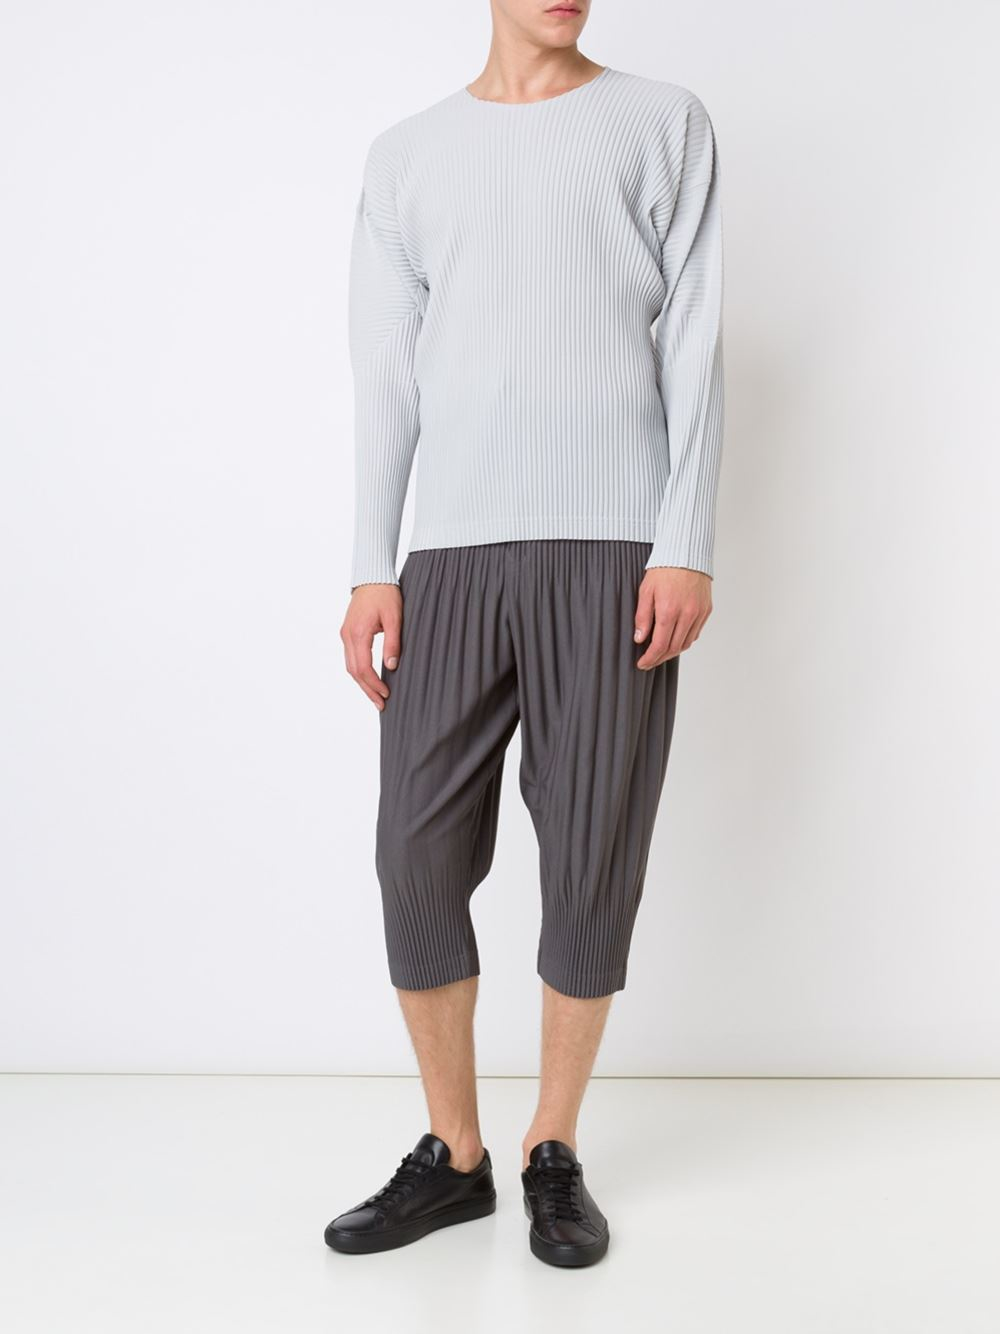 lyst homme pliss issey miyake long sleeve pleated t shirt in gray for men. Black Bedroom Furniture Sets. Home Design Ideas